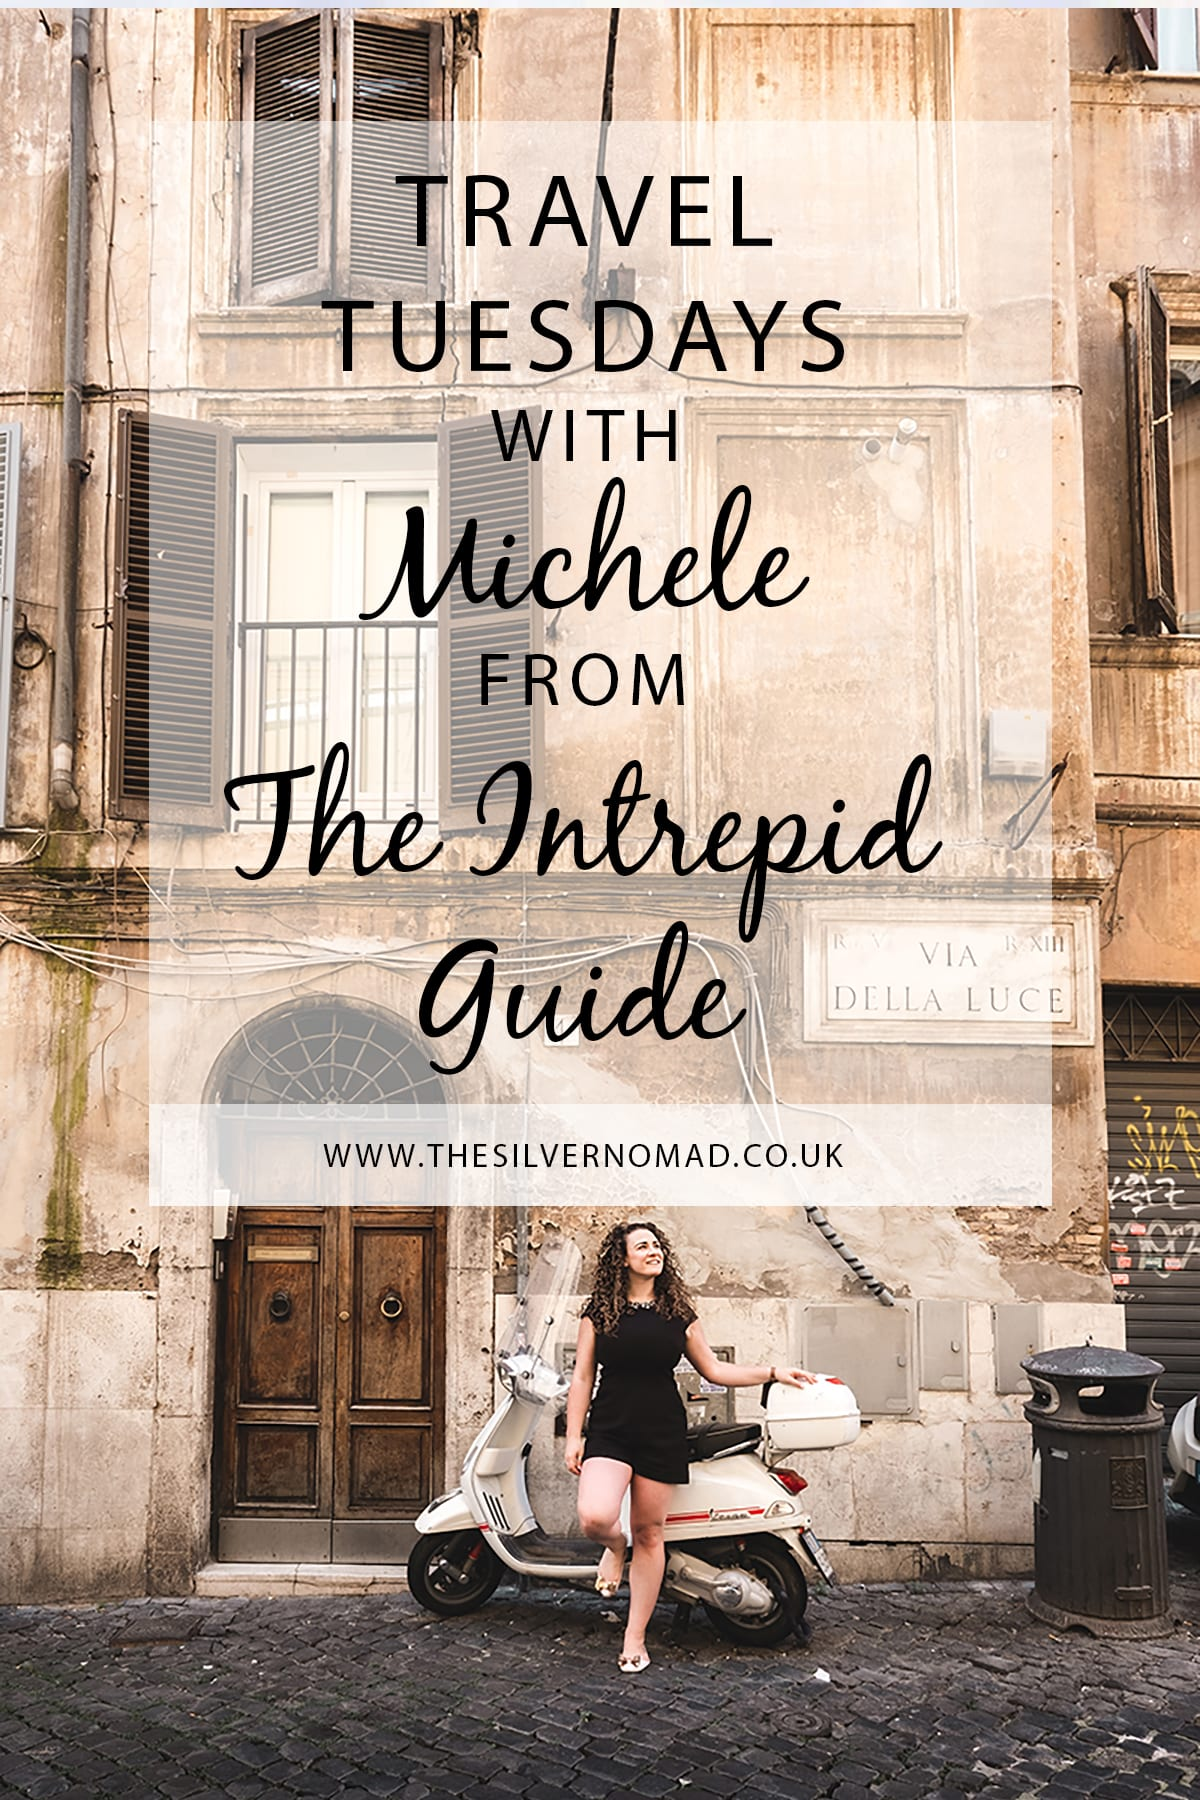 Travel Tuesday with The Intrepid Guide. Michele answers questions on her travel style, tips and favourite destinations to travel to.